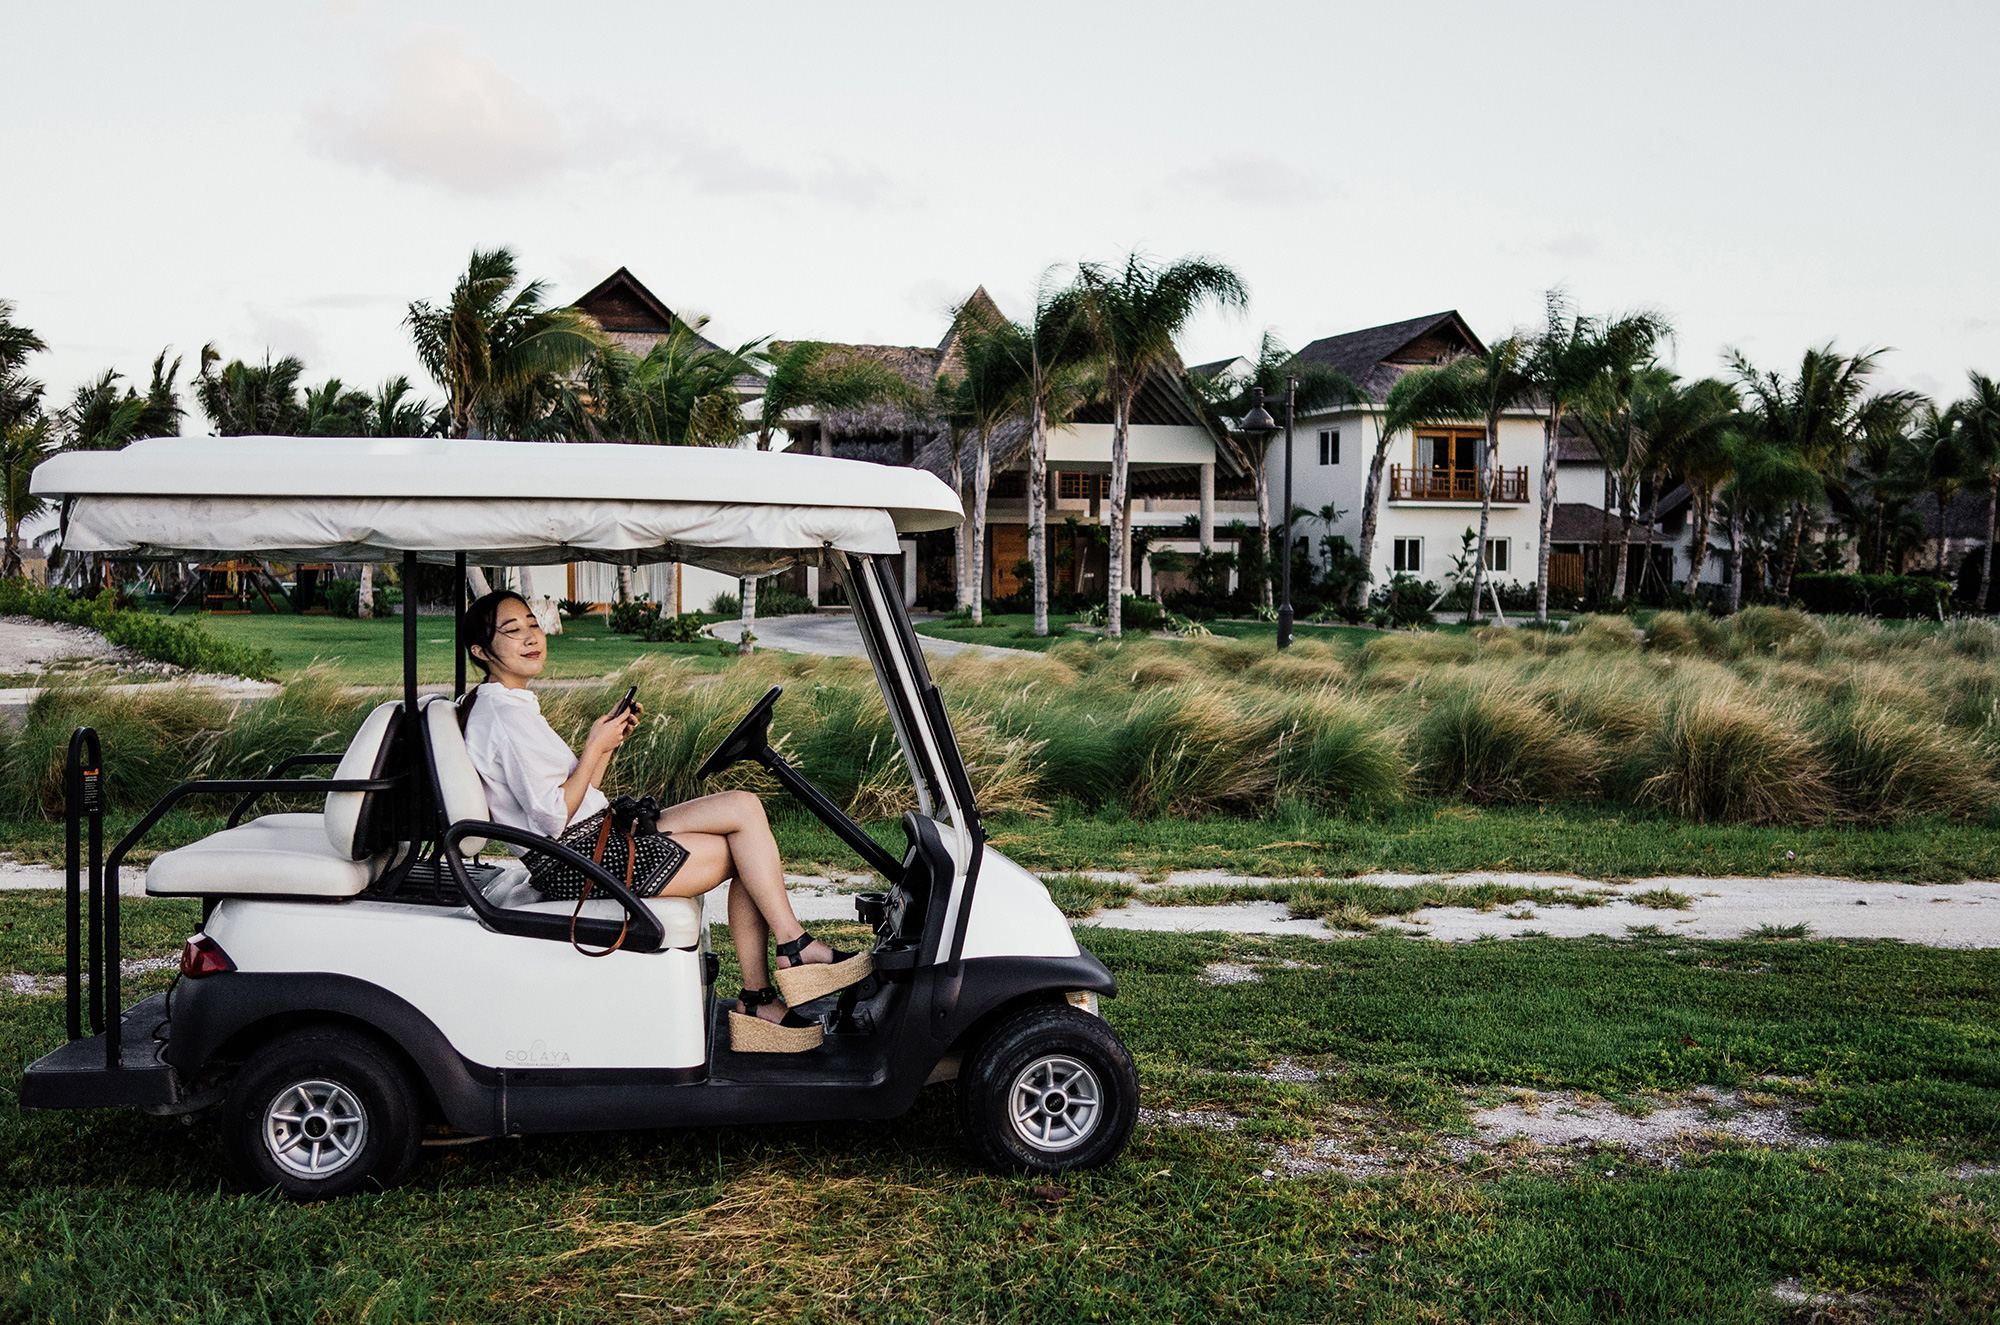 Explorations outside the resort with personal golf carts provided for every room